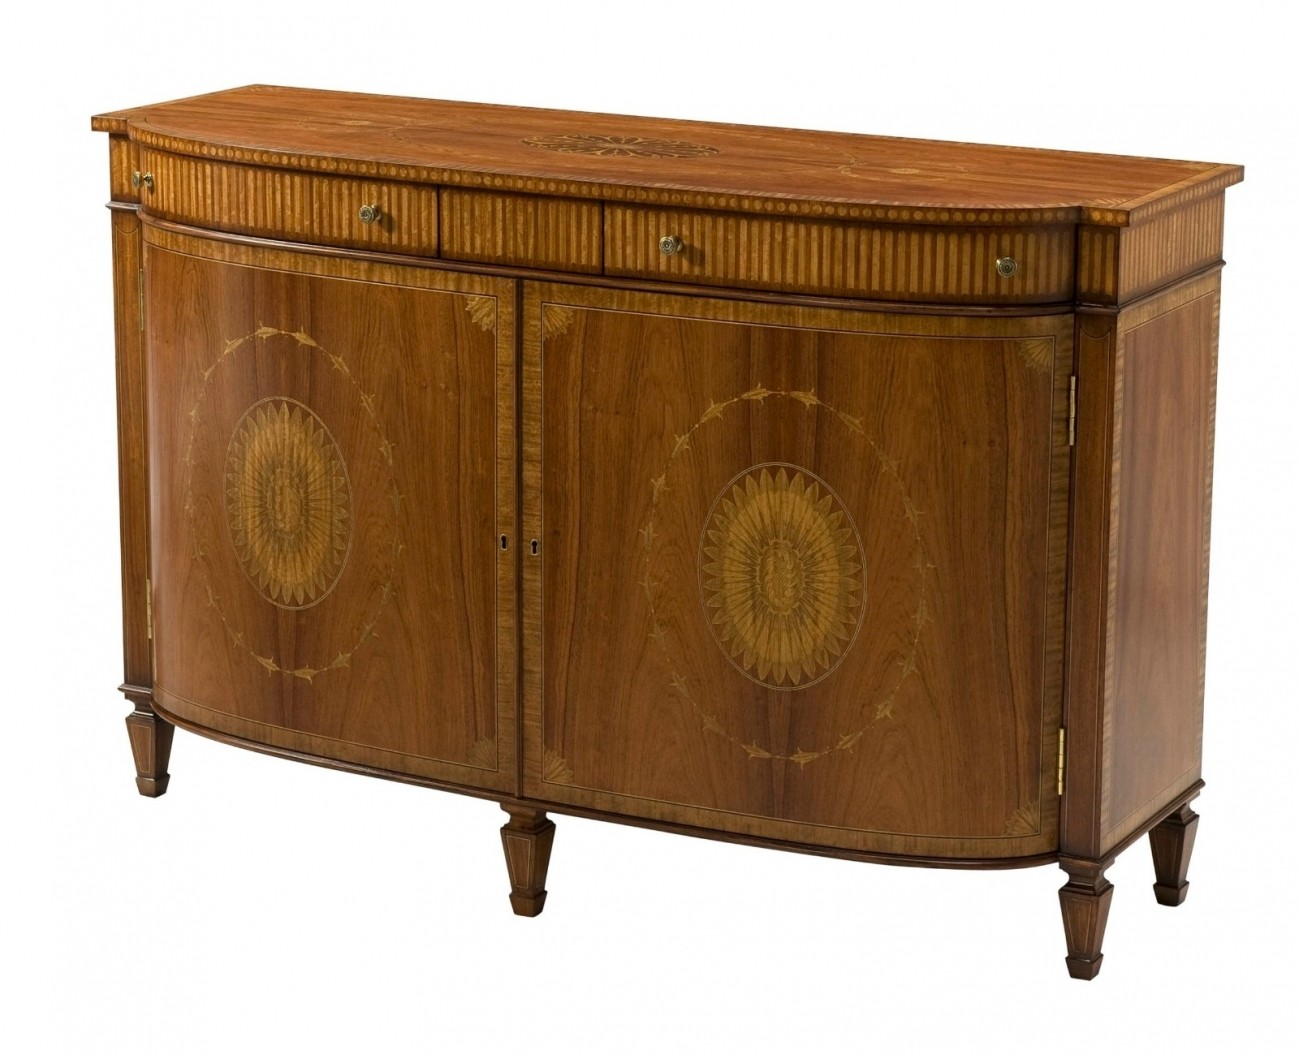 Rosewood marquetry inlaid side cabinet